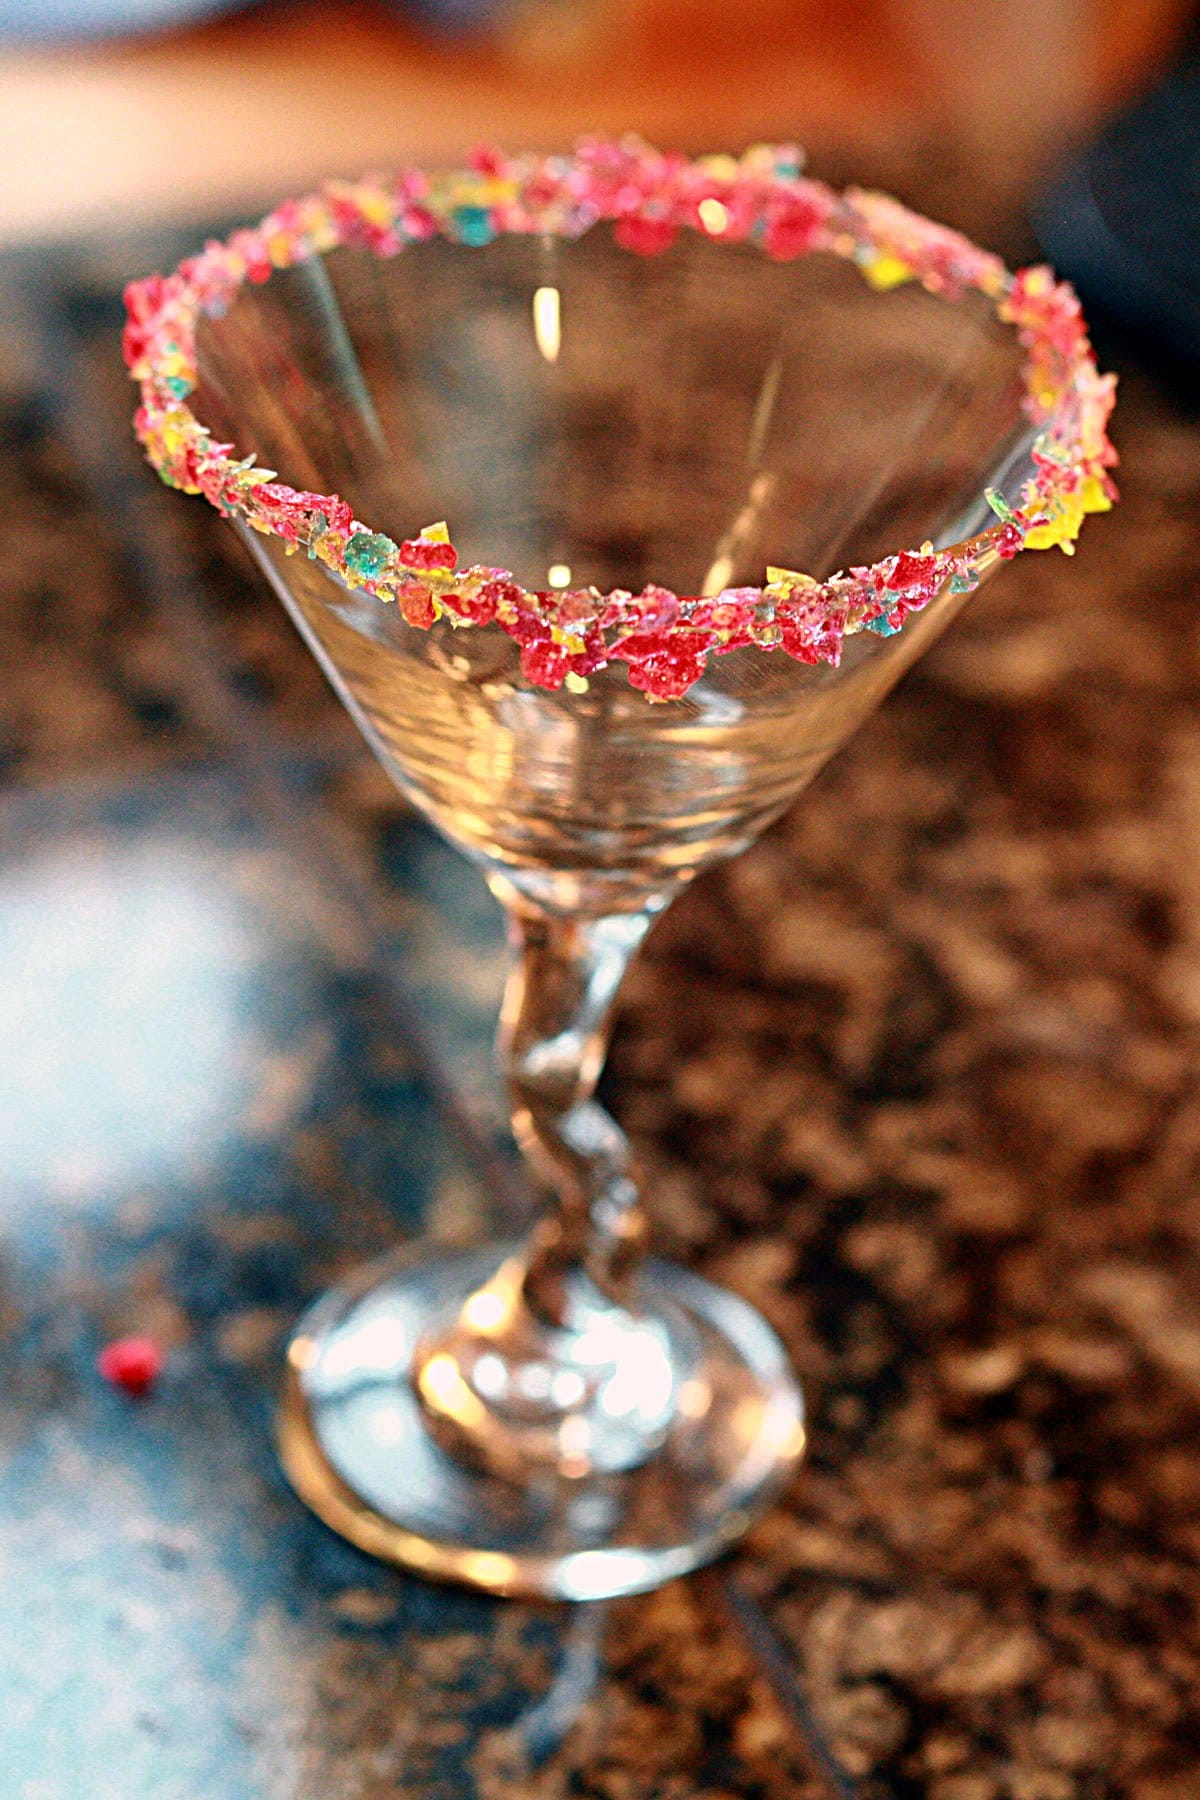 A martini glass stands on a granite countertop. Its rim is encrusted with tiny shards of multicoloured candy.